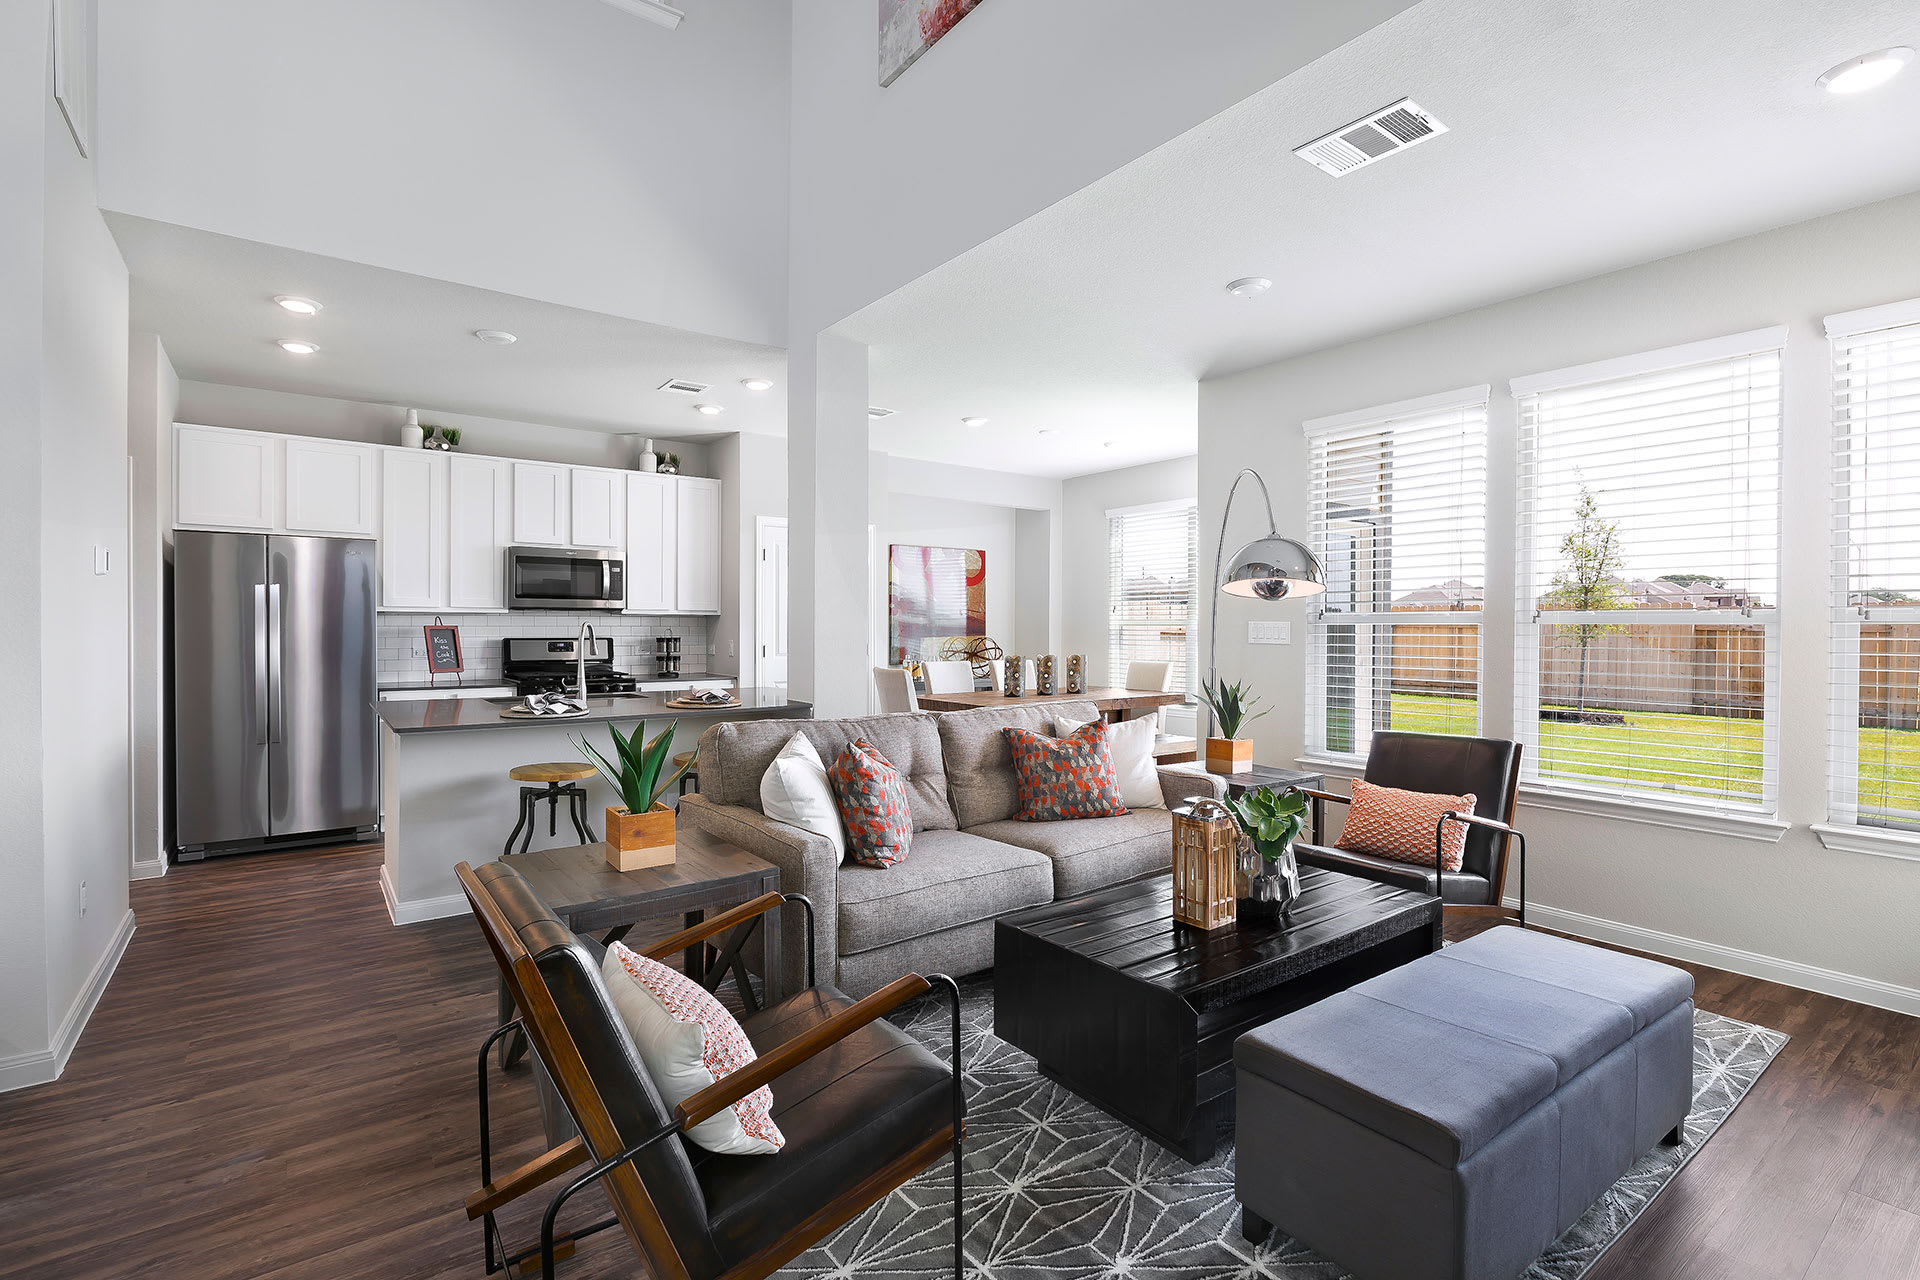 Rivers Edge Apartments Furnished Apartment Interior with Modern Finishes